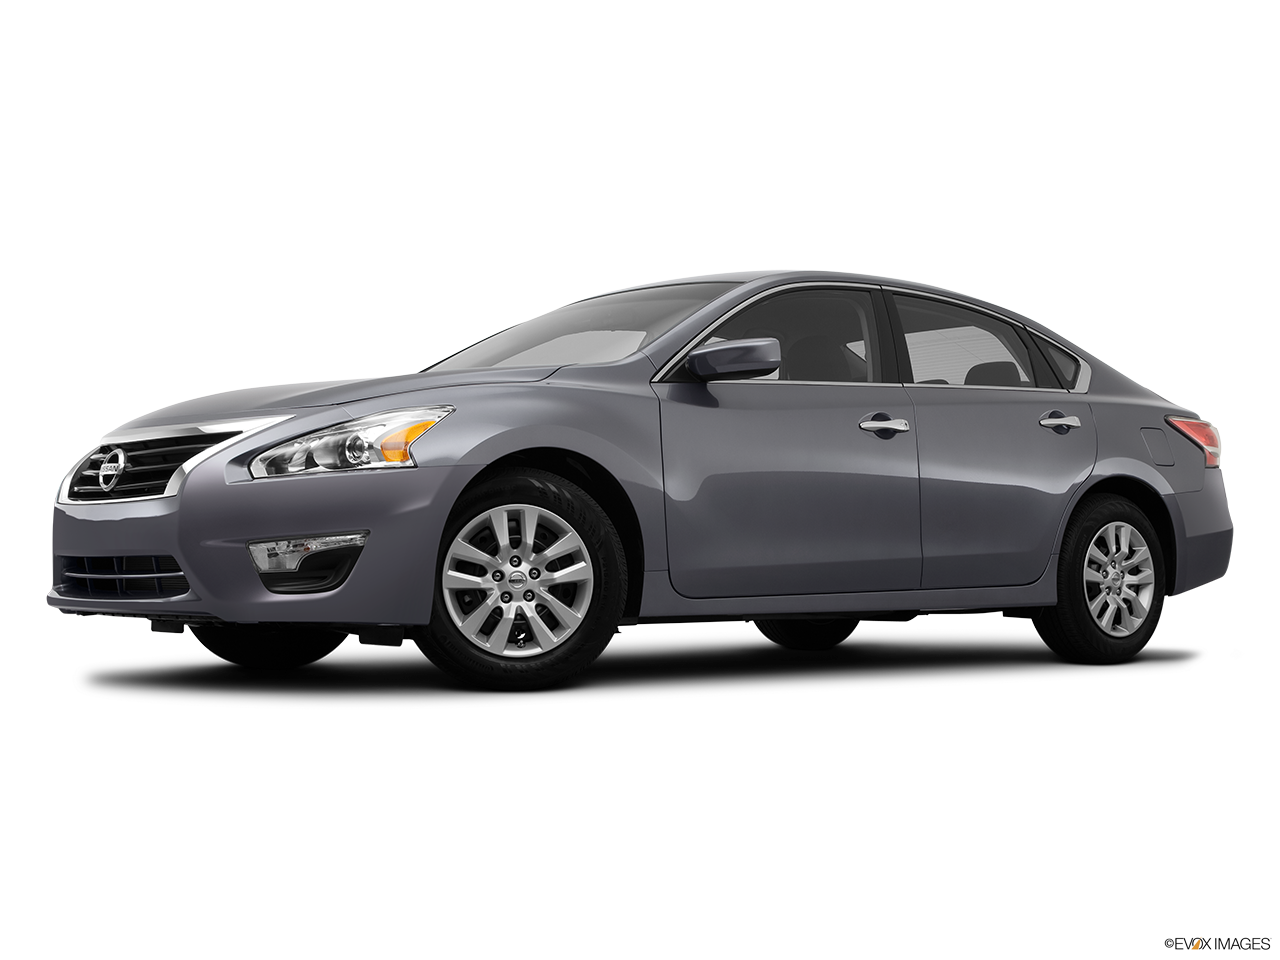 Altima 2.5S: Is this the right Altima for you?